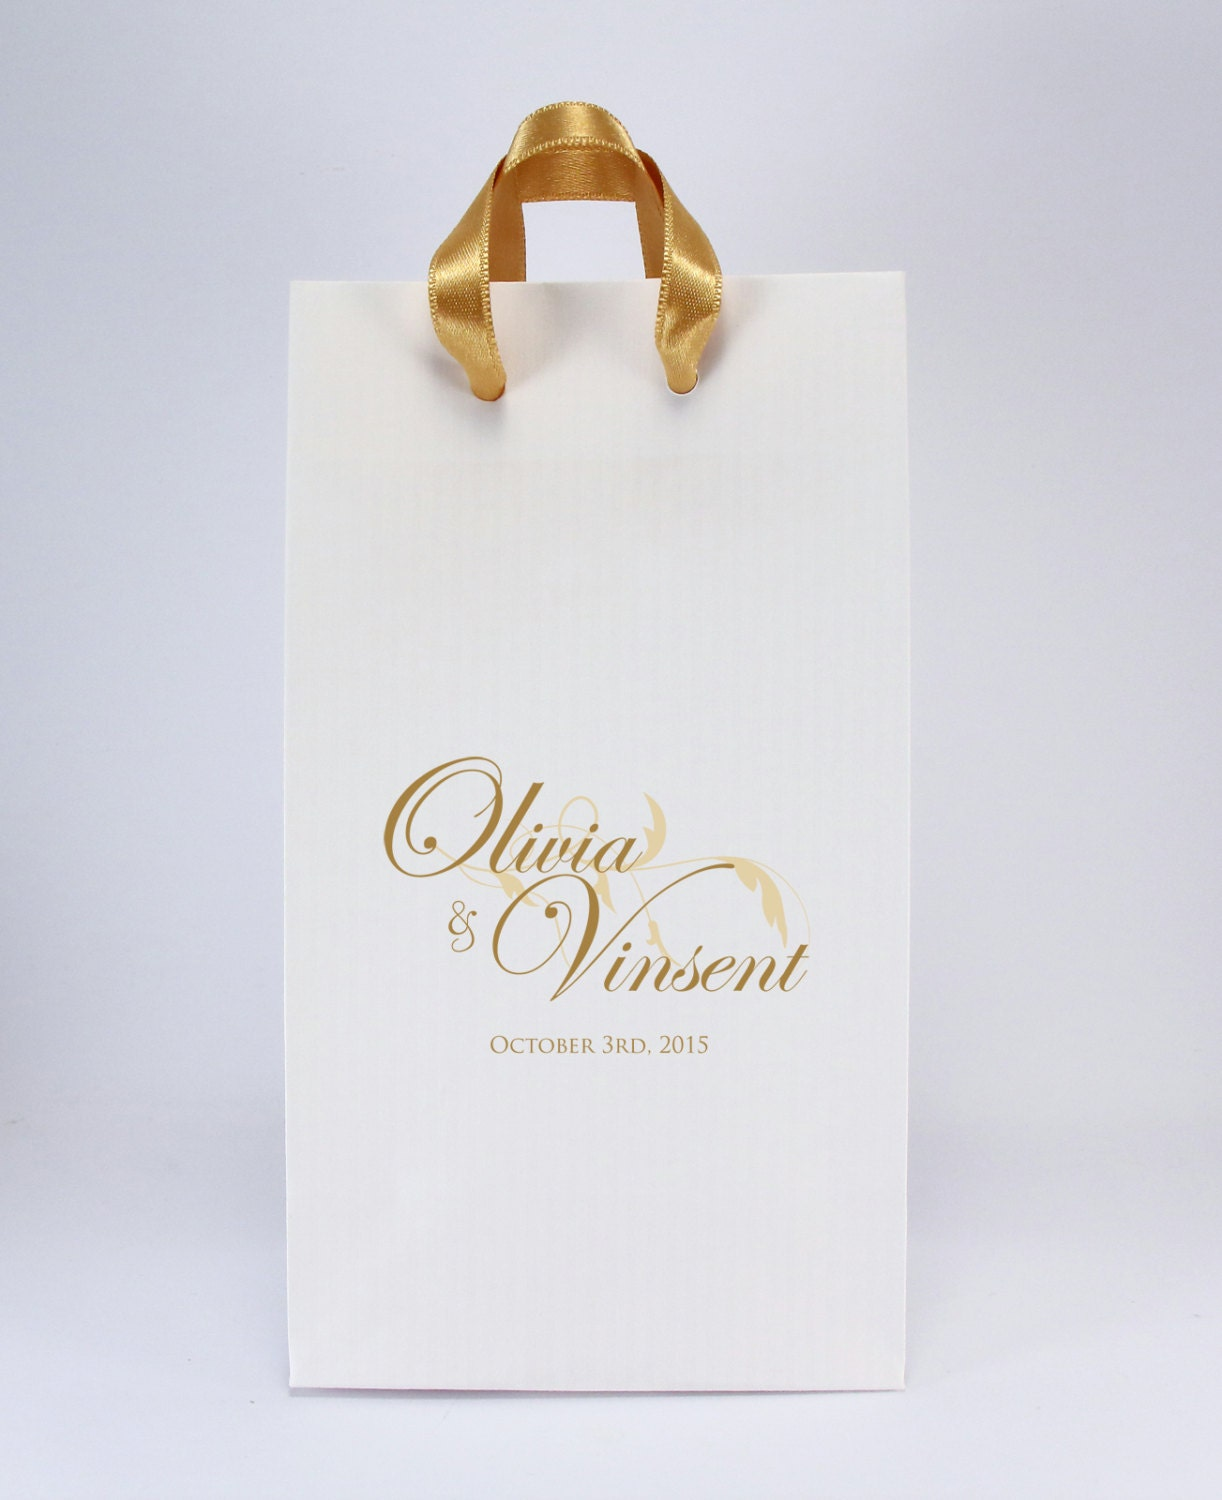 wedding favor bags - 28 images - wedding favor bags set of 35 white ...